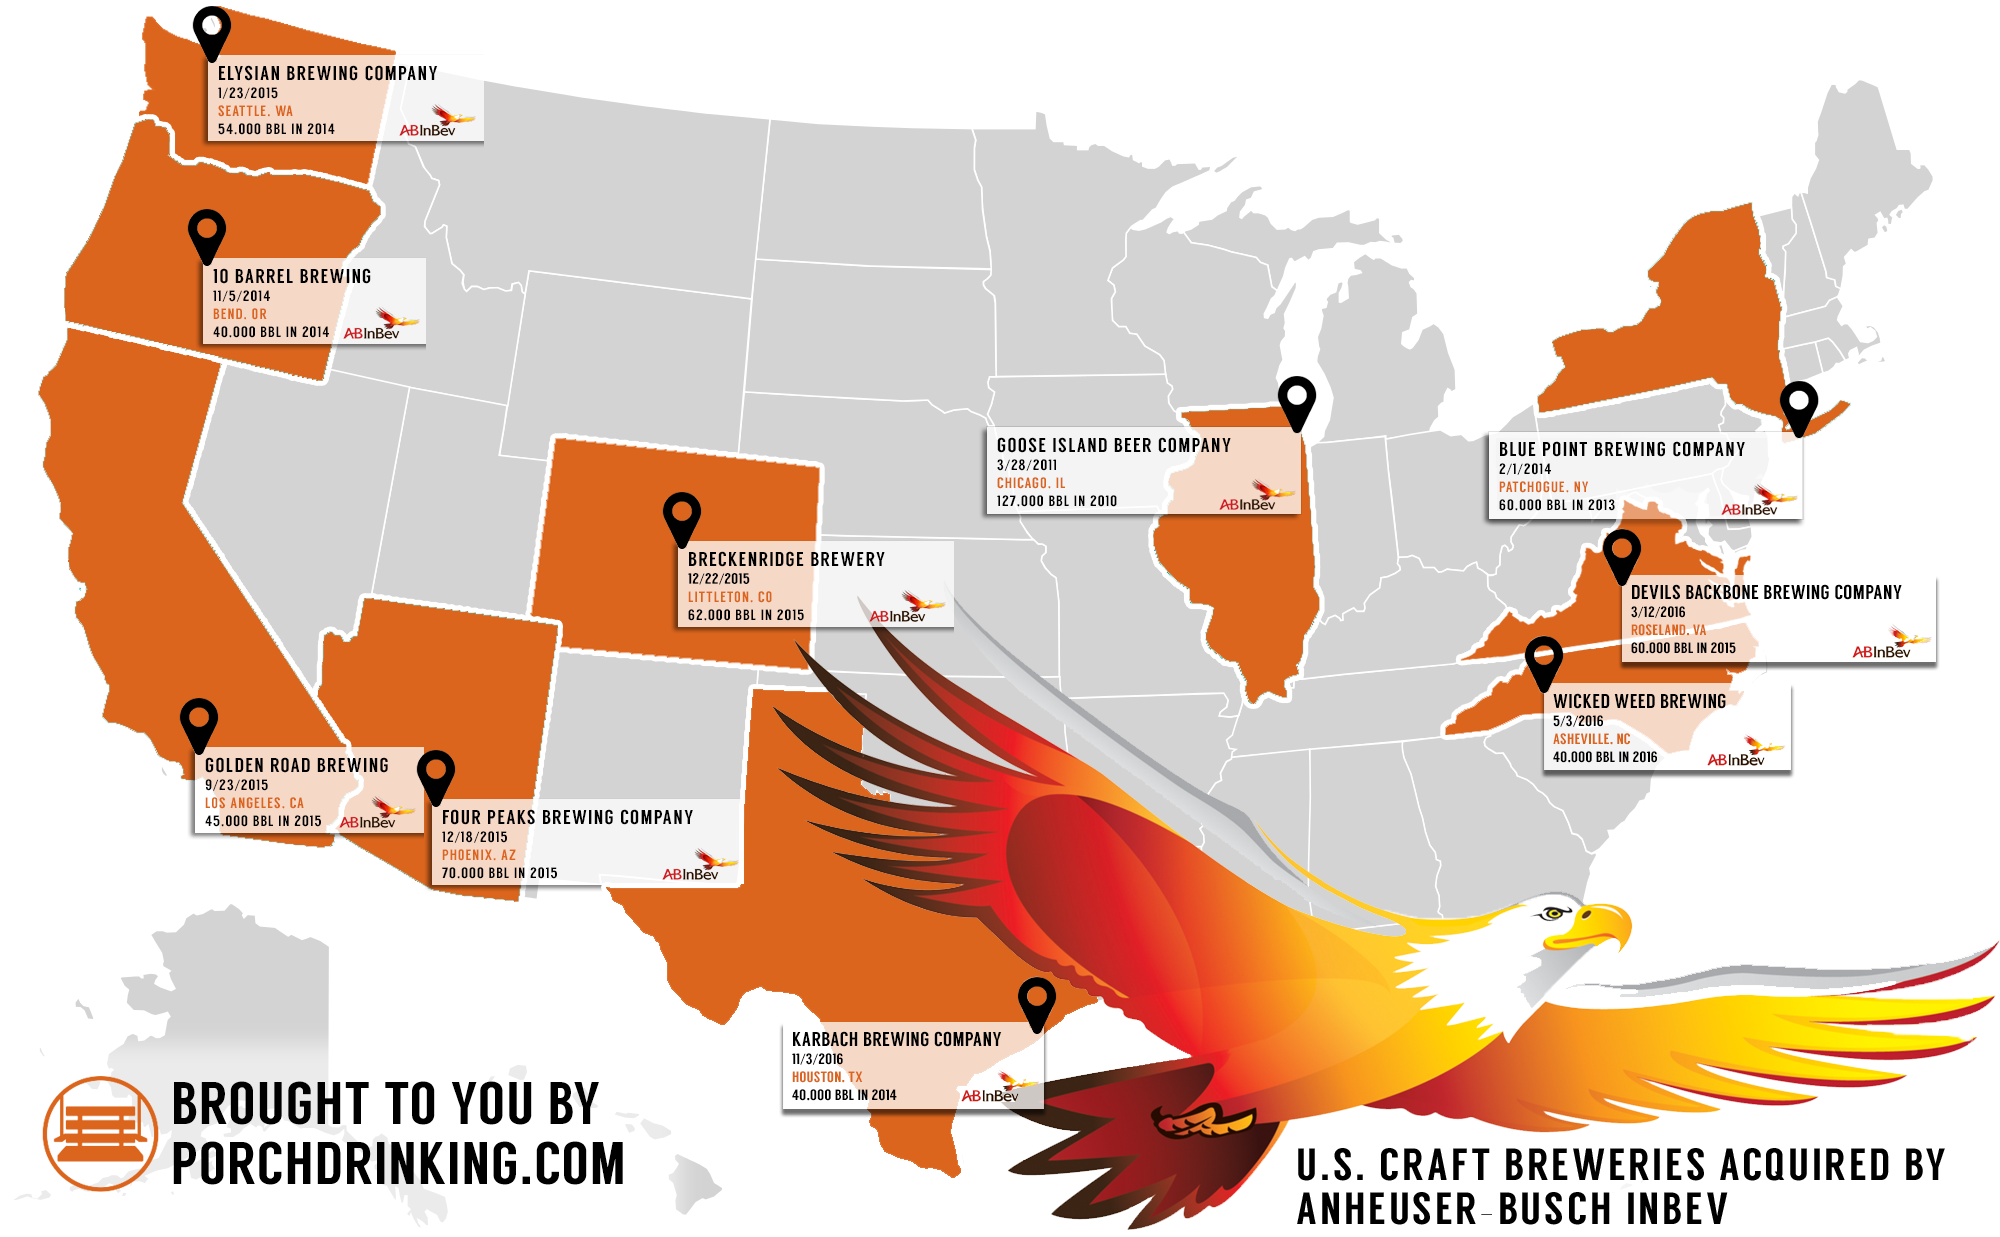 Anheuser-Busch InBev Acquires Wicked Weed Map